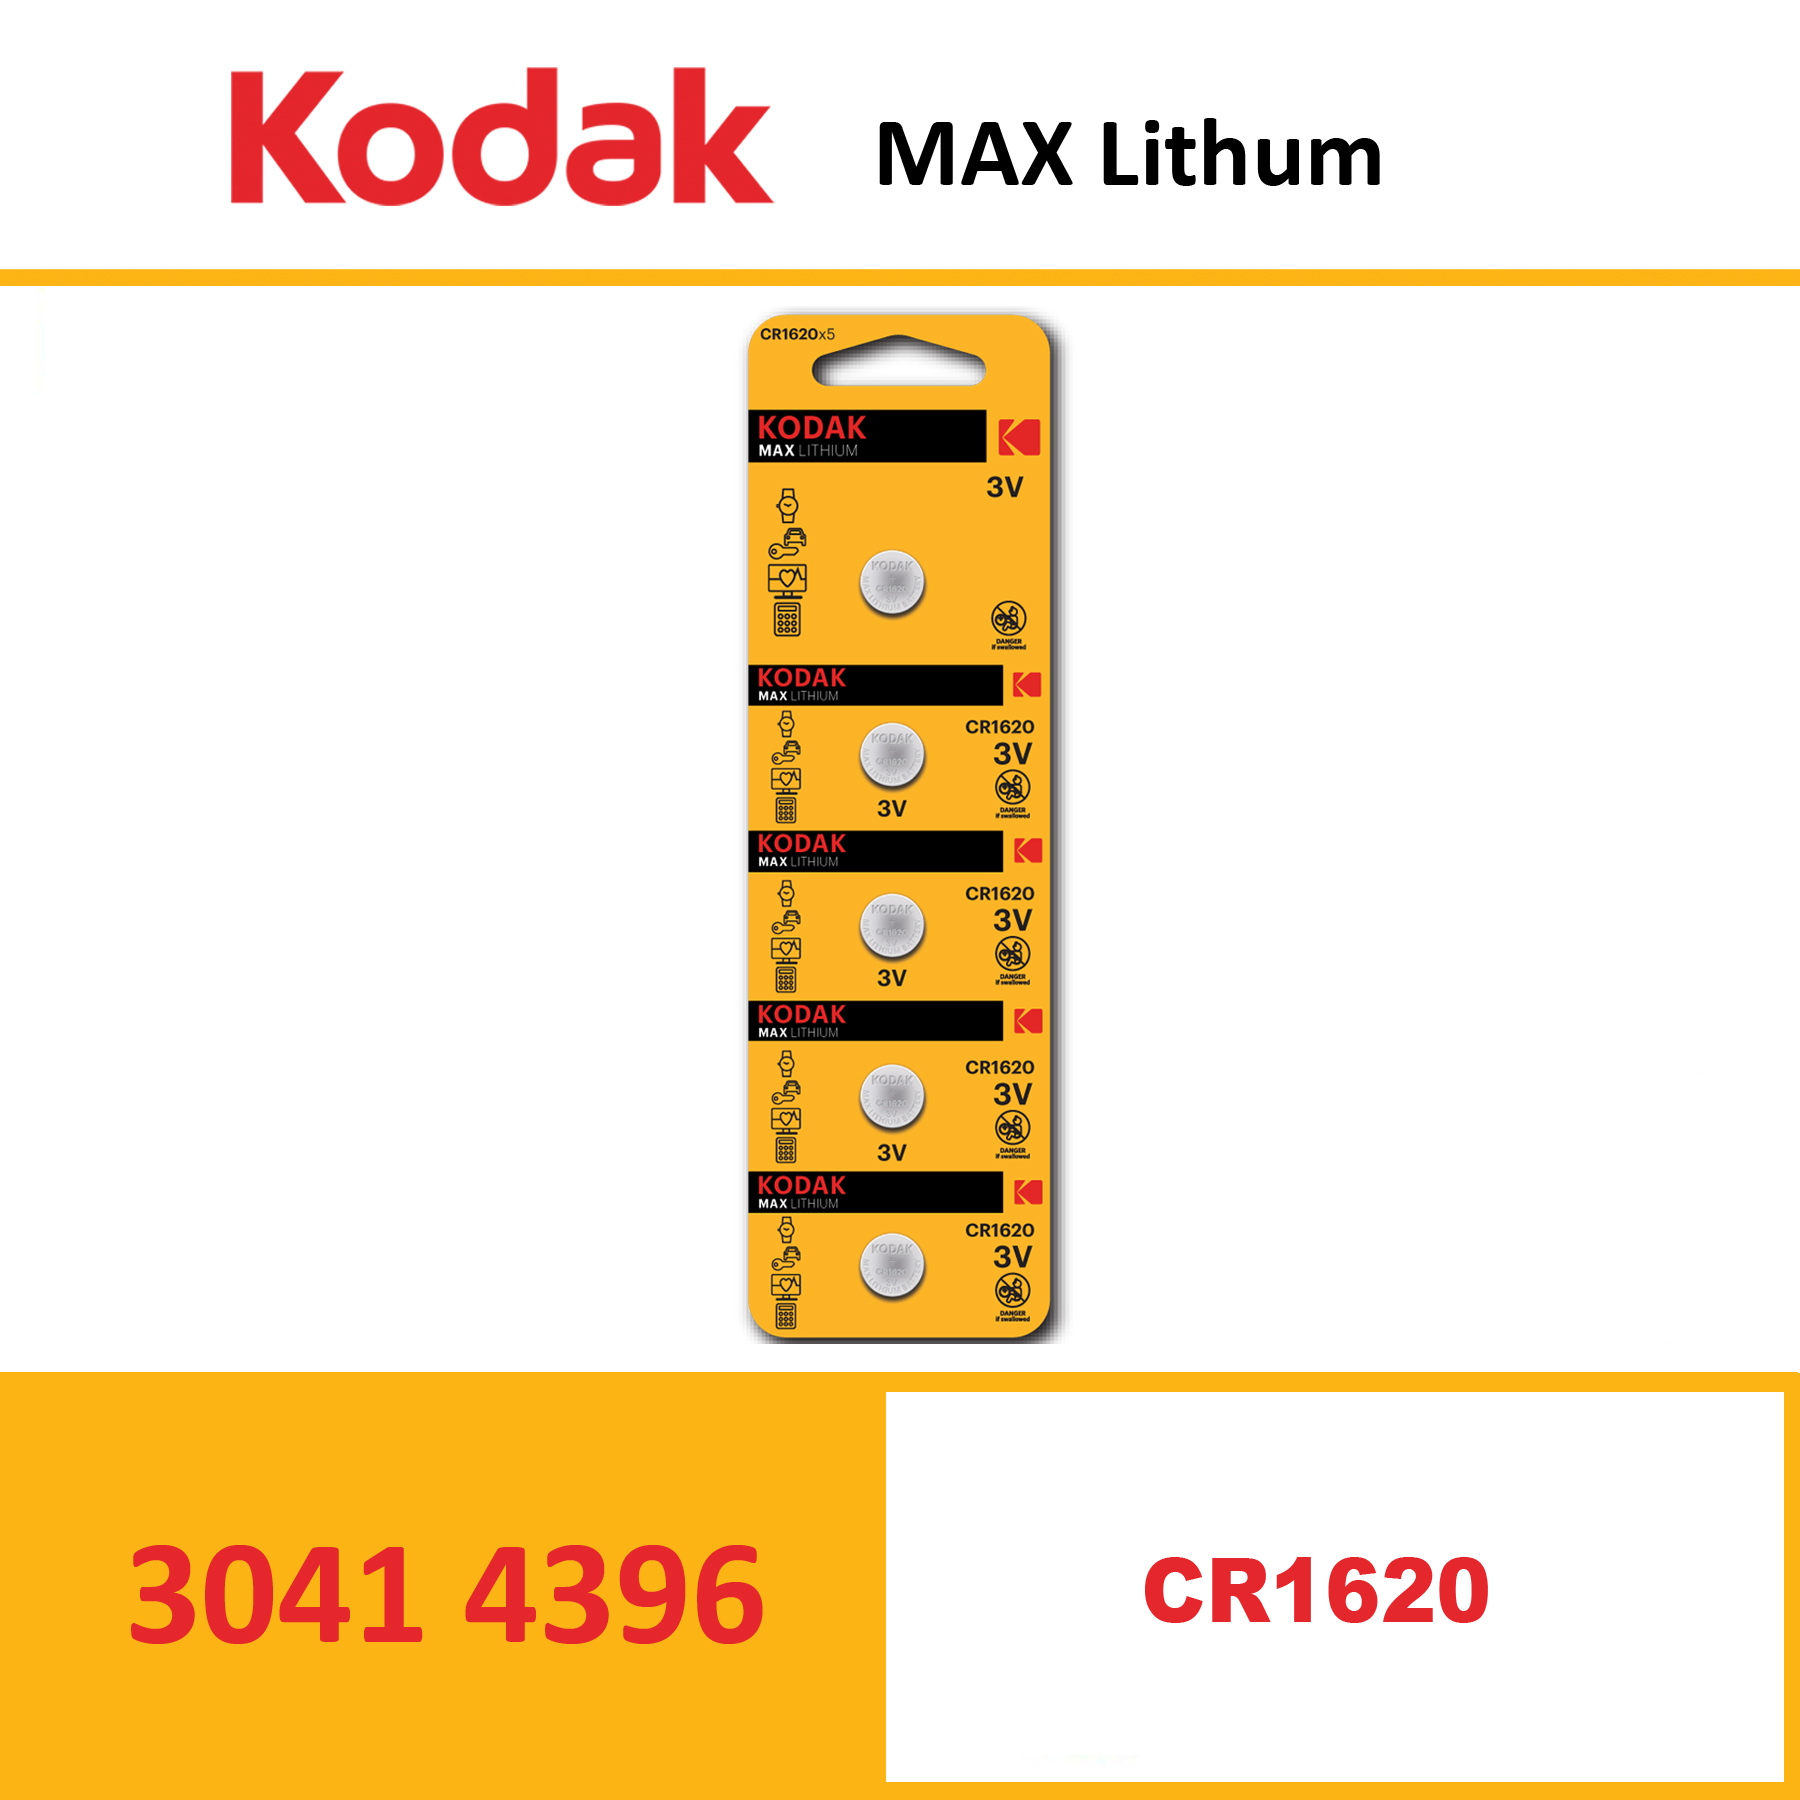 KODAK KCR1620 MAX Lithium coin cell Pack of 5 Piece